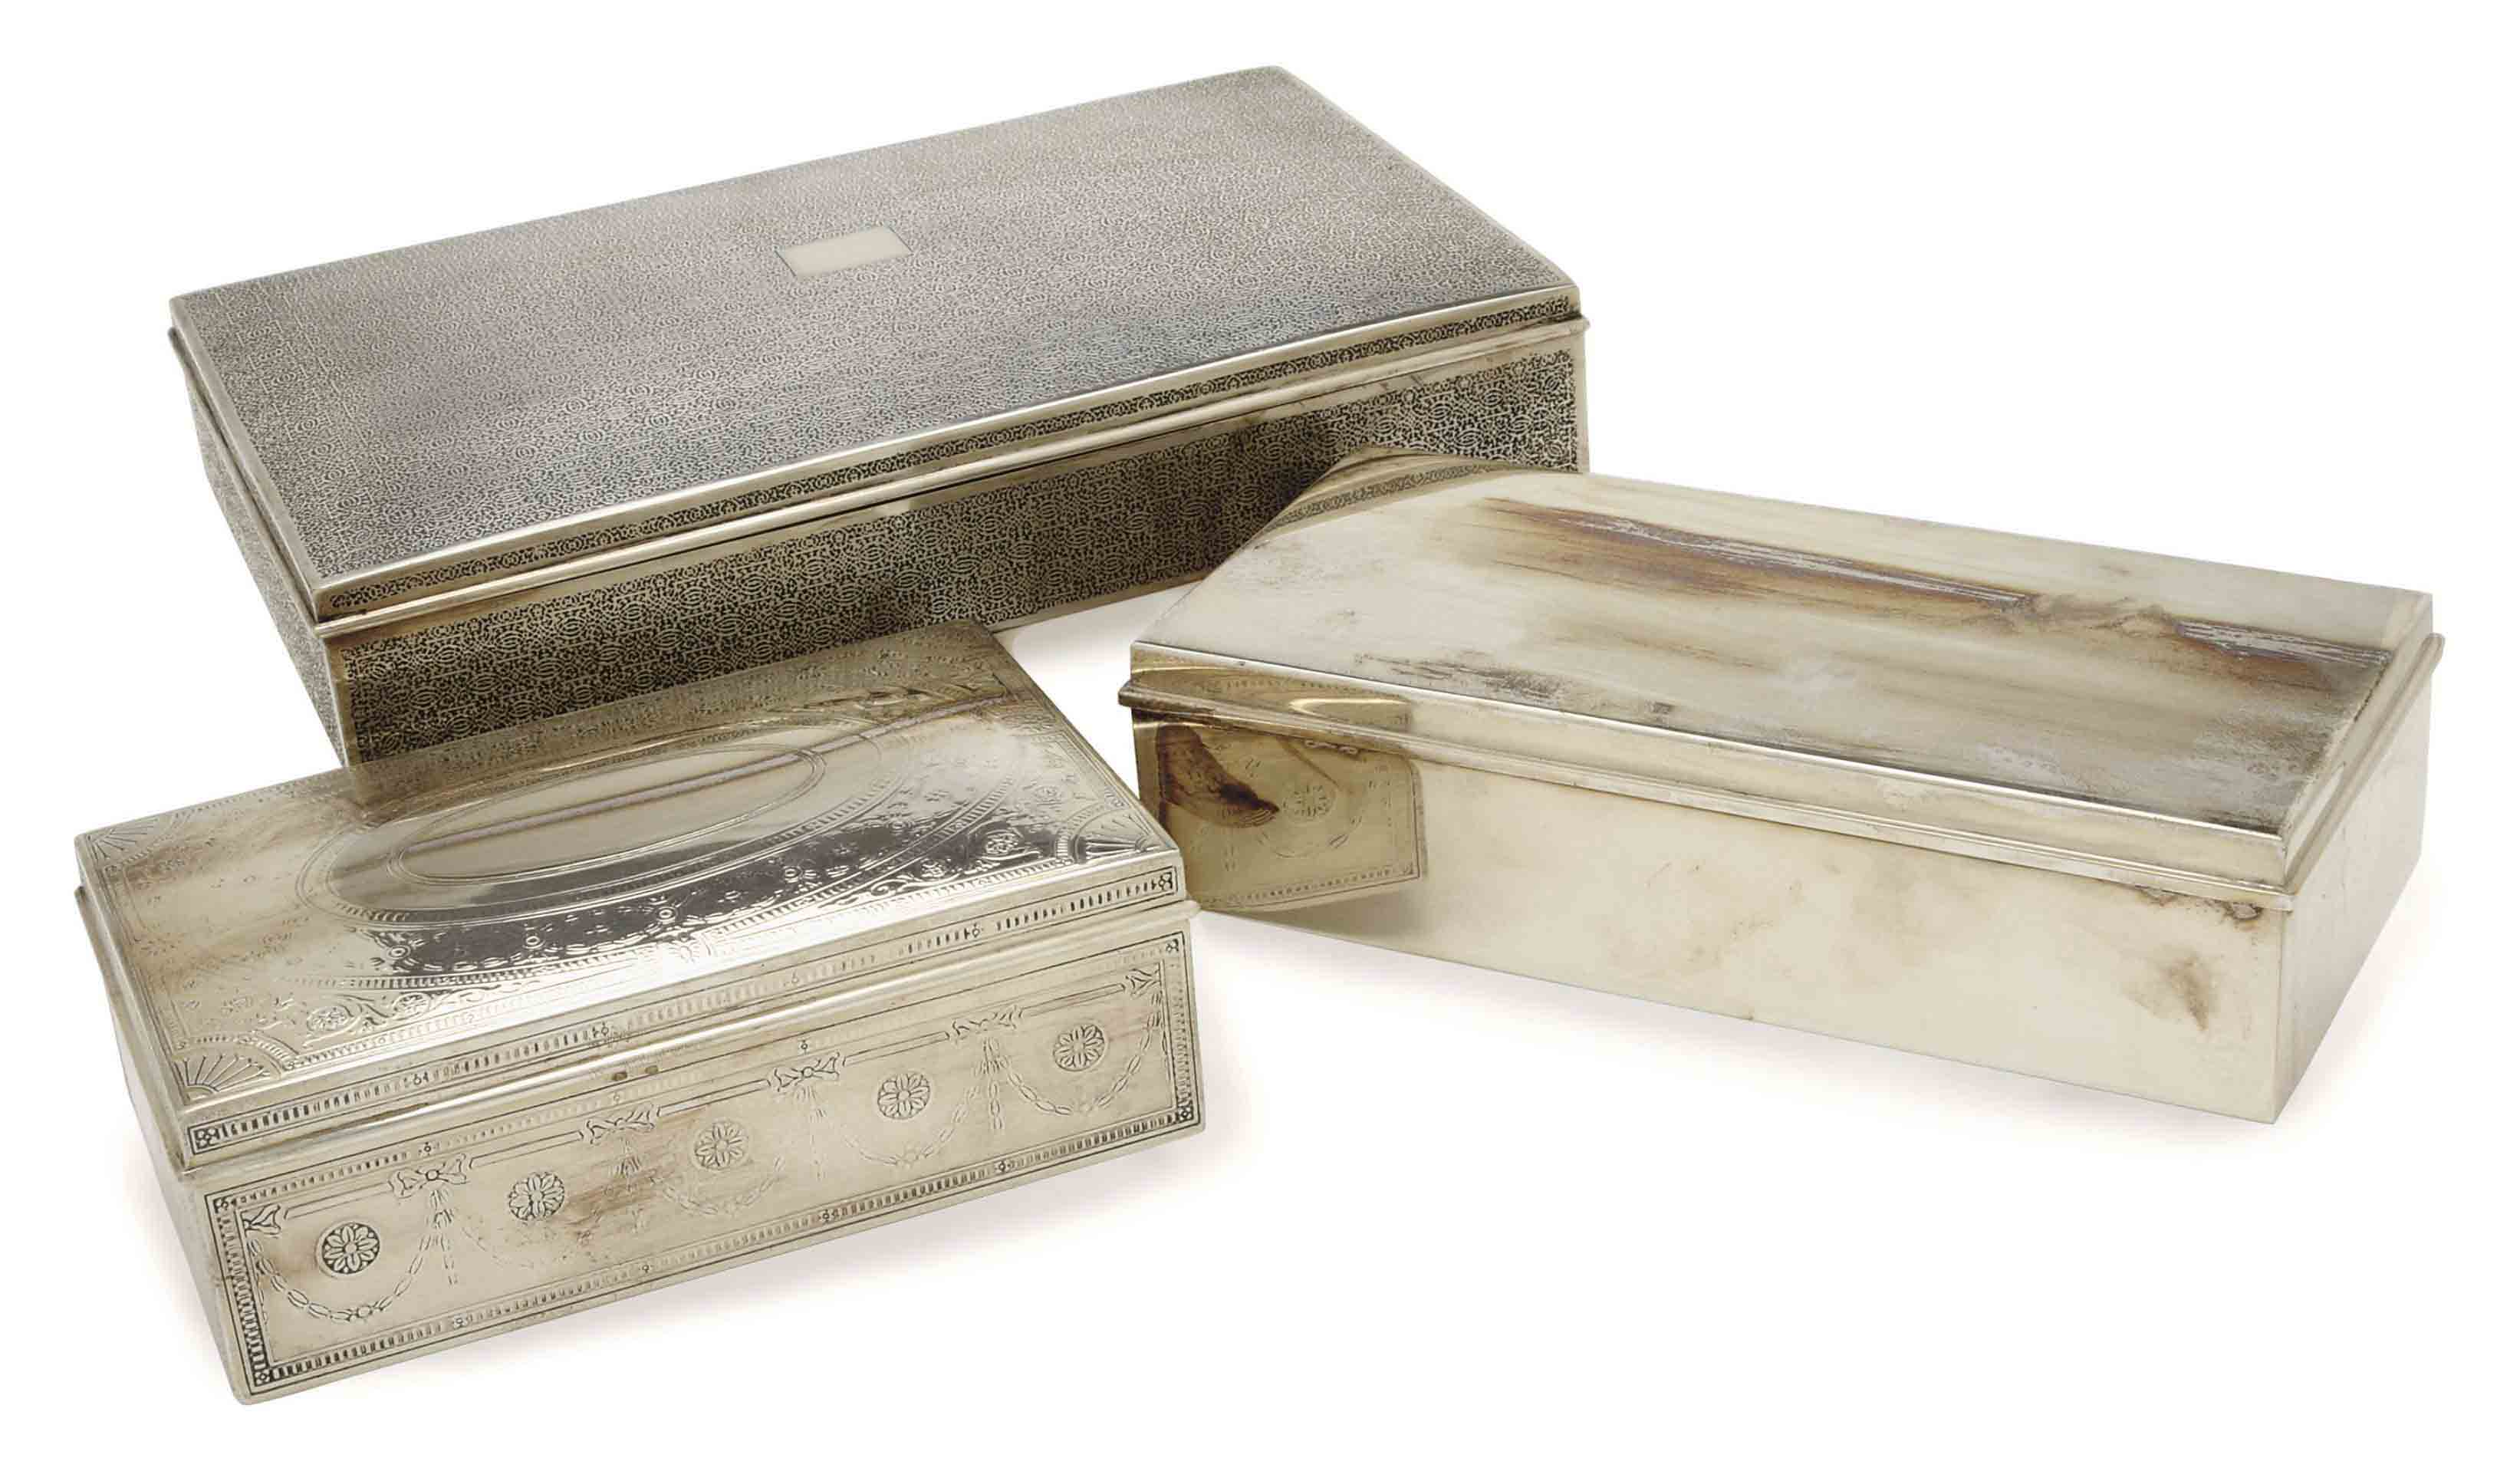 THREE AMERICAN SILVER CIGARETTE BOXES WITH HINGED COVERS,